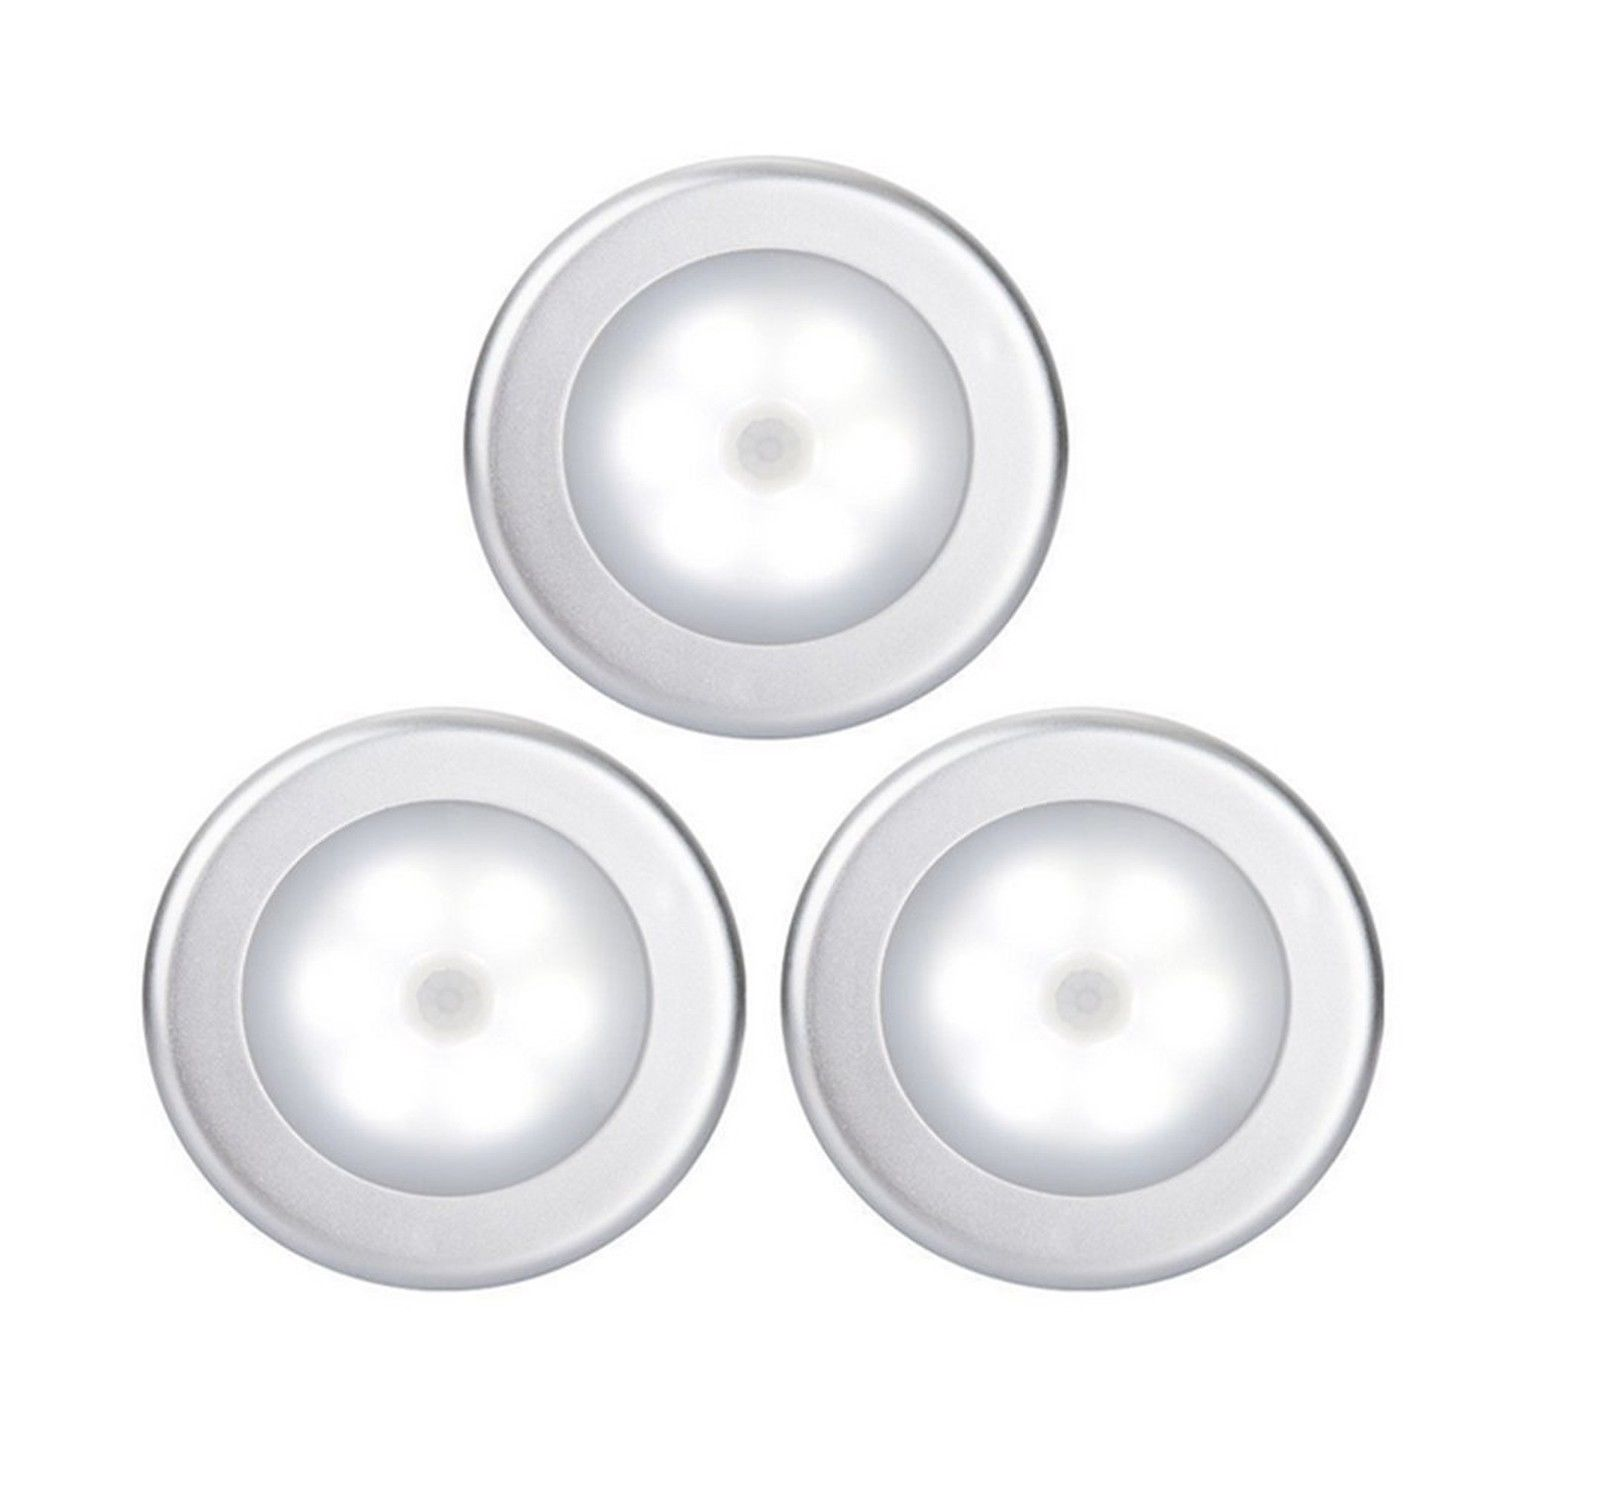 Goldmore Motion Sensor Lights